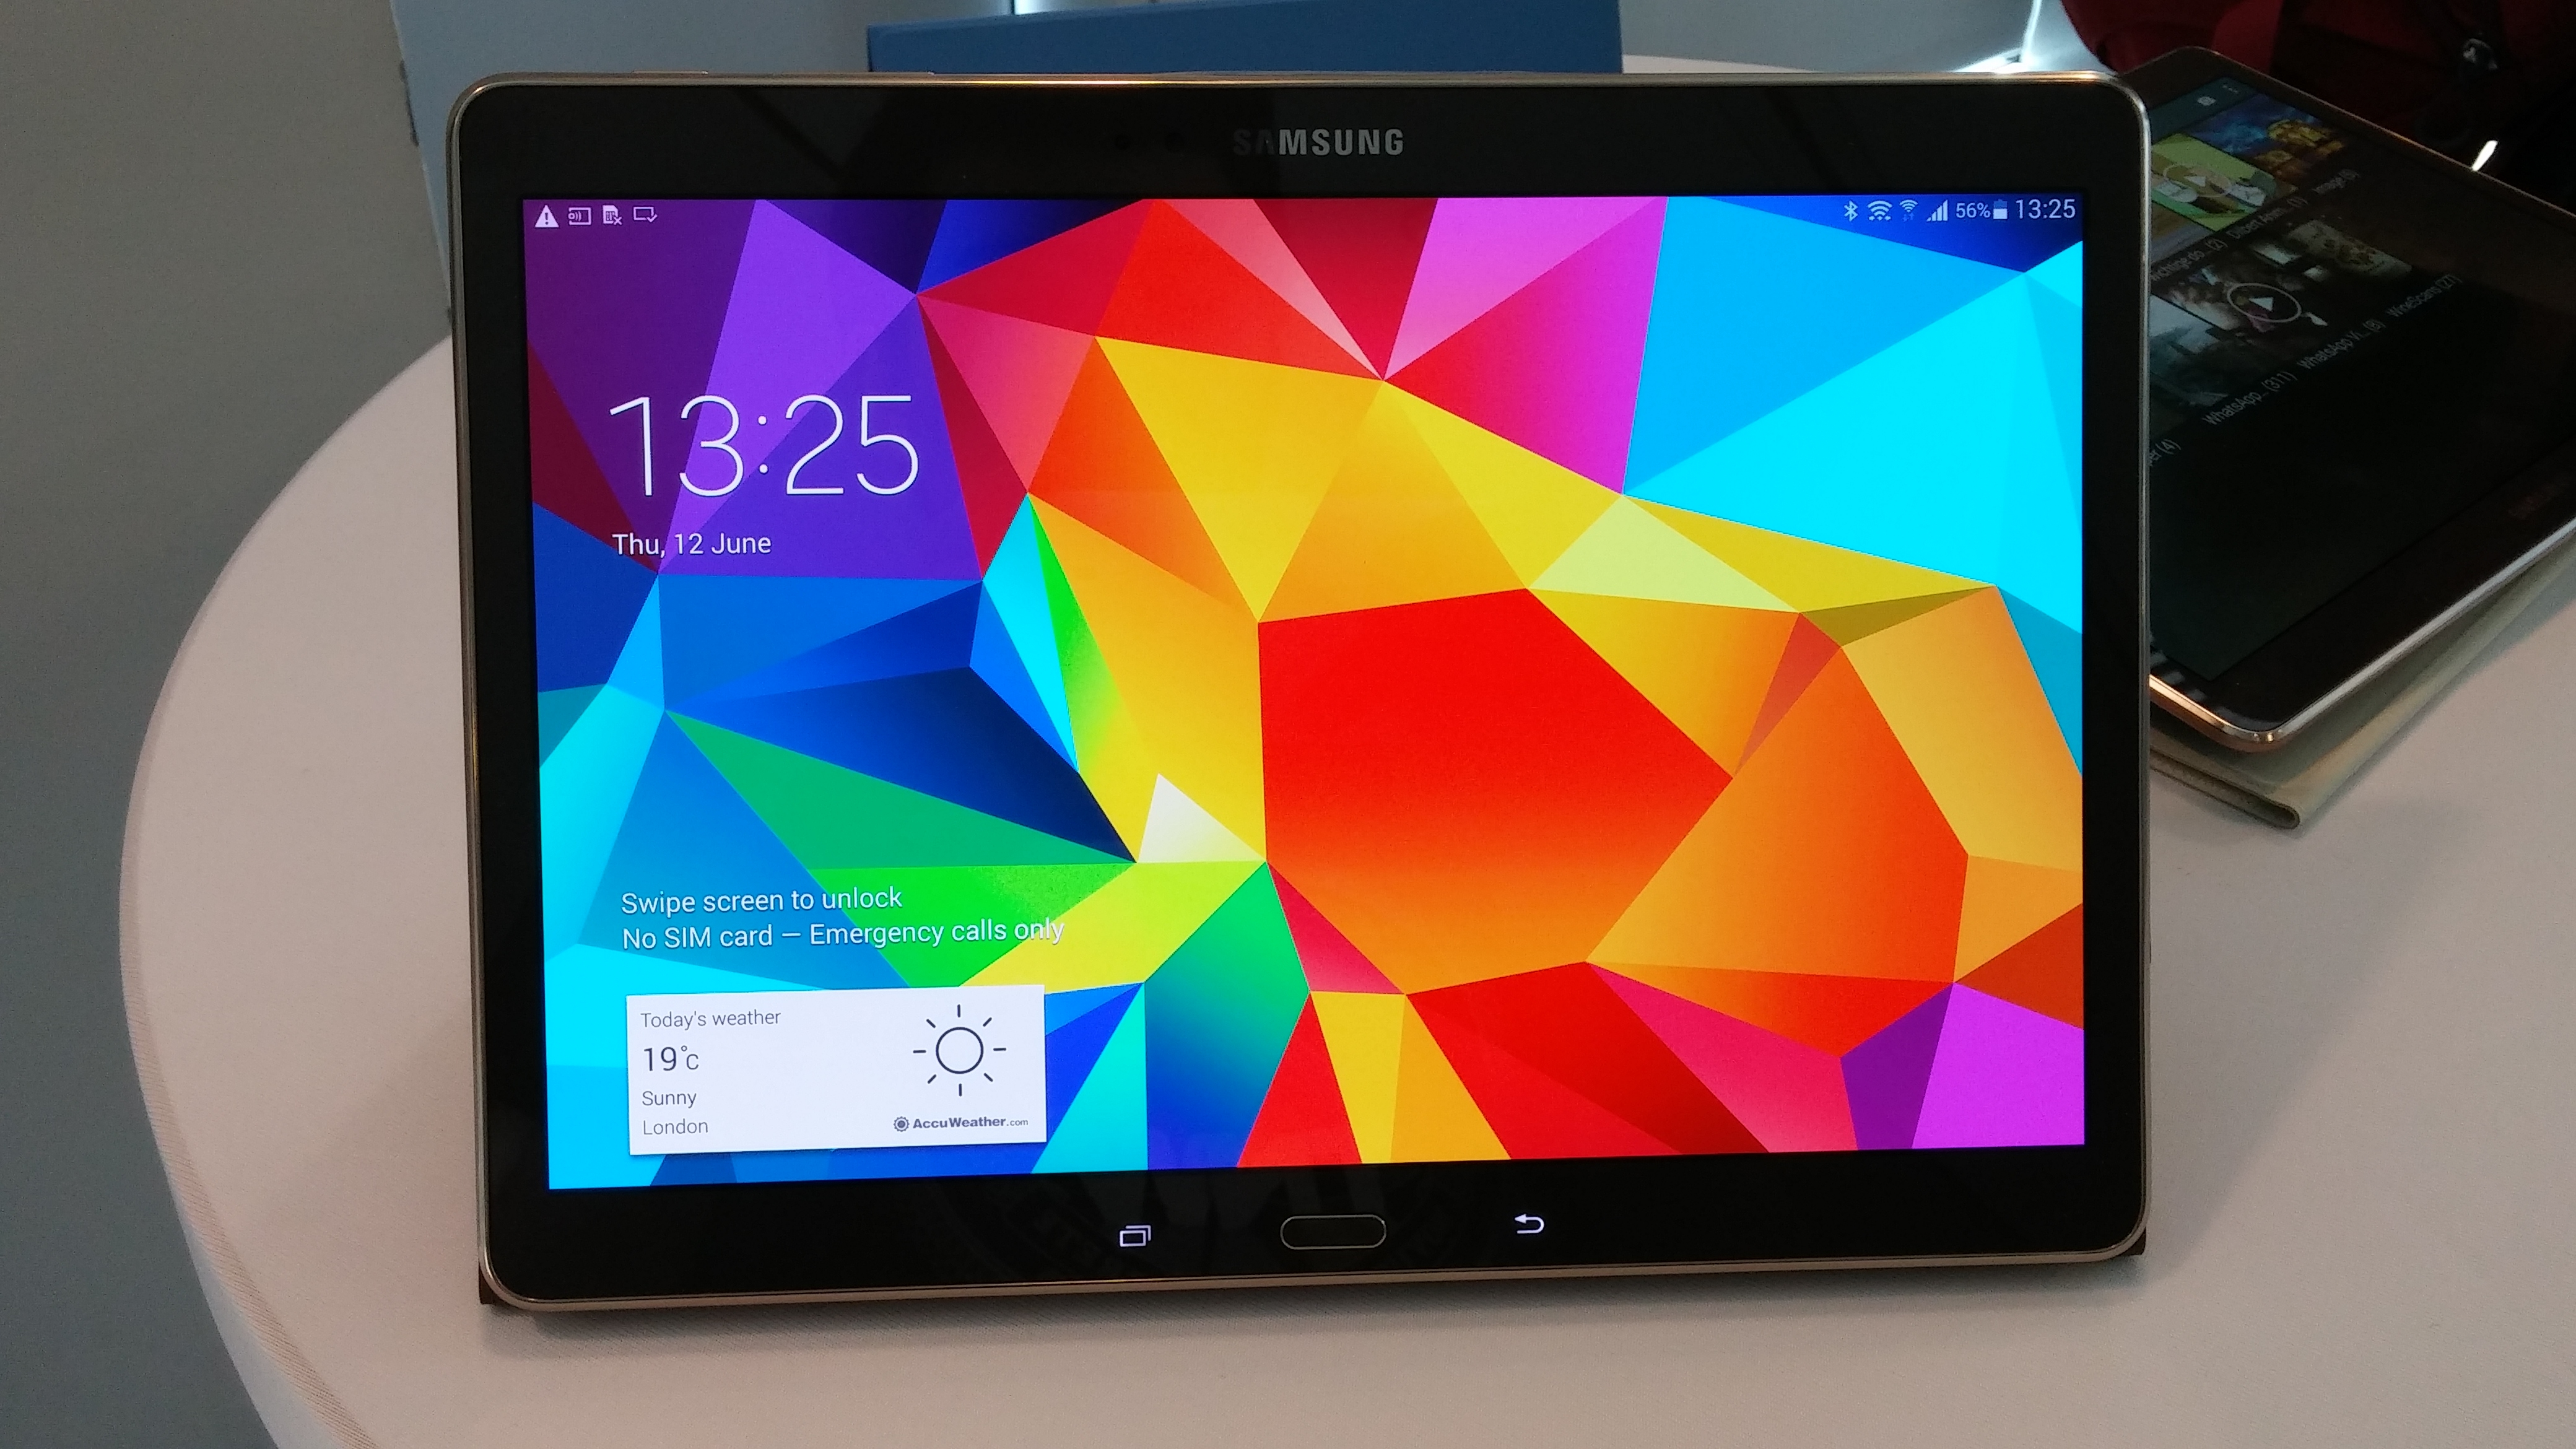 samsung galaxy tab s the new samsung tablet review tech. Black Bedroom Furniture Sets. Home Design Ideas